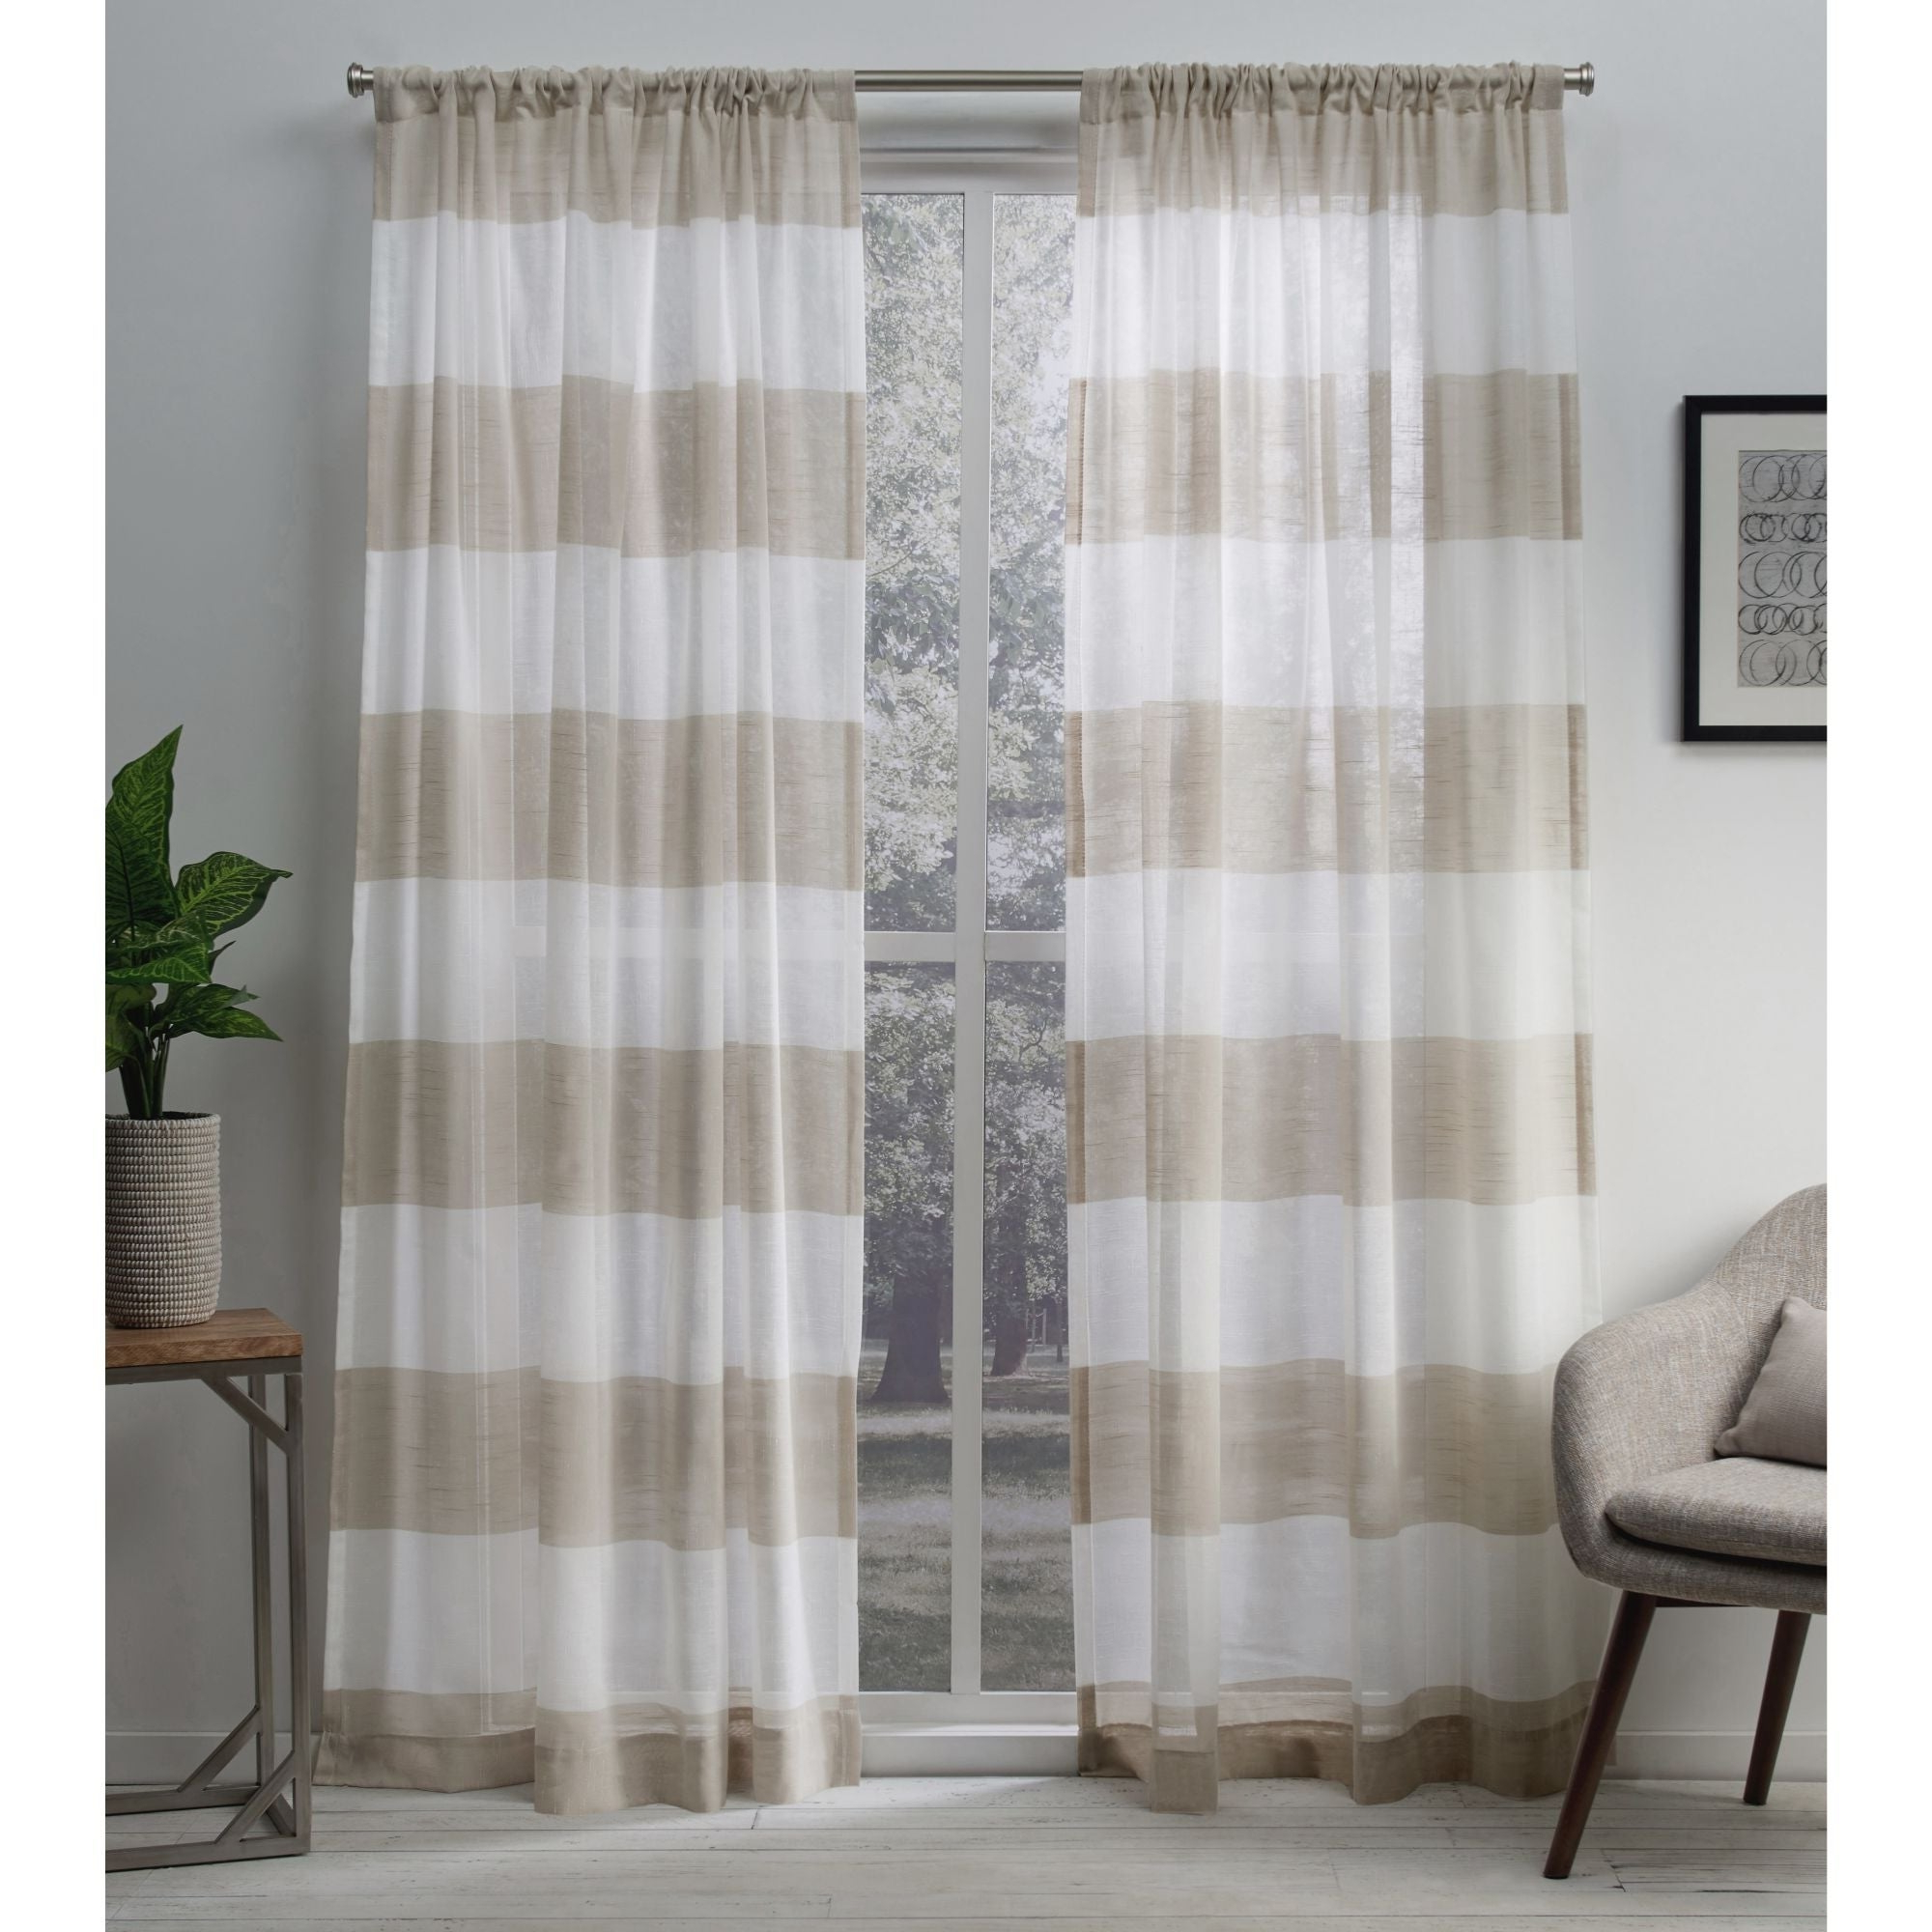 Curtain Panel Pairs With Widely Used Porch & Den Ocean Sheer Linen Curtain Panel Pair With Rod Pocket (View 5 of 20)